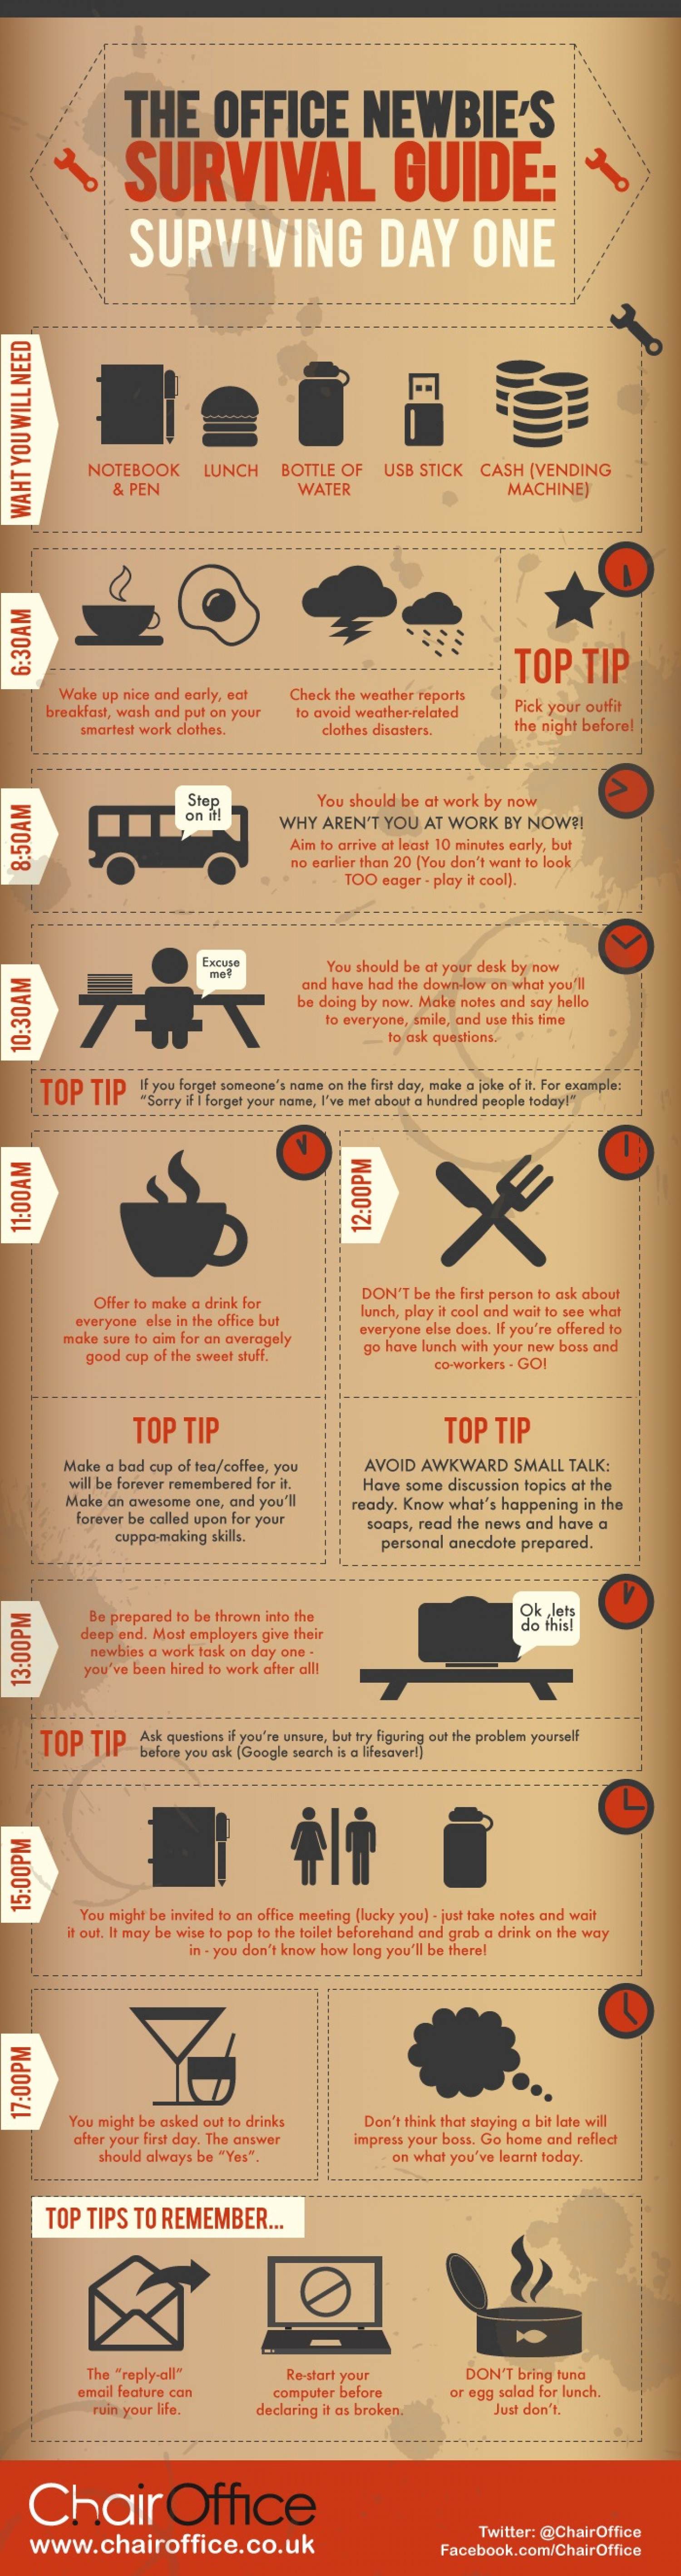 The Office Newbie's Survival Guide: Surviving Day One Infographic